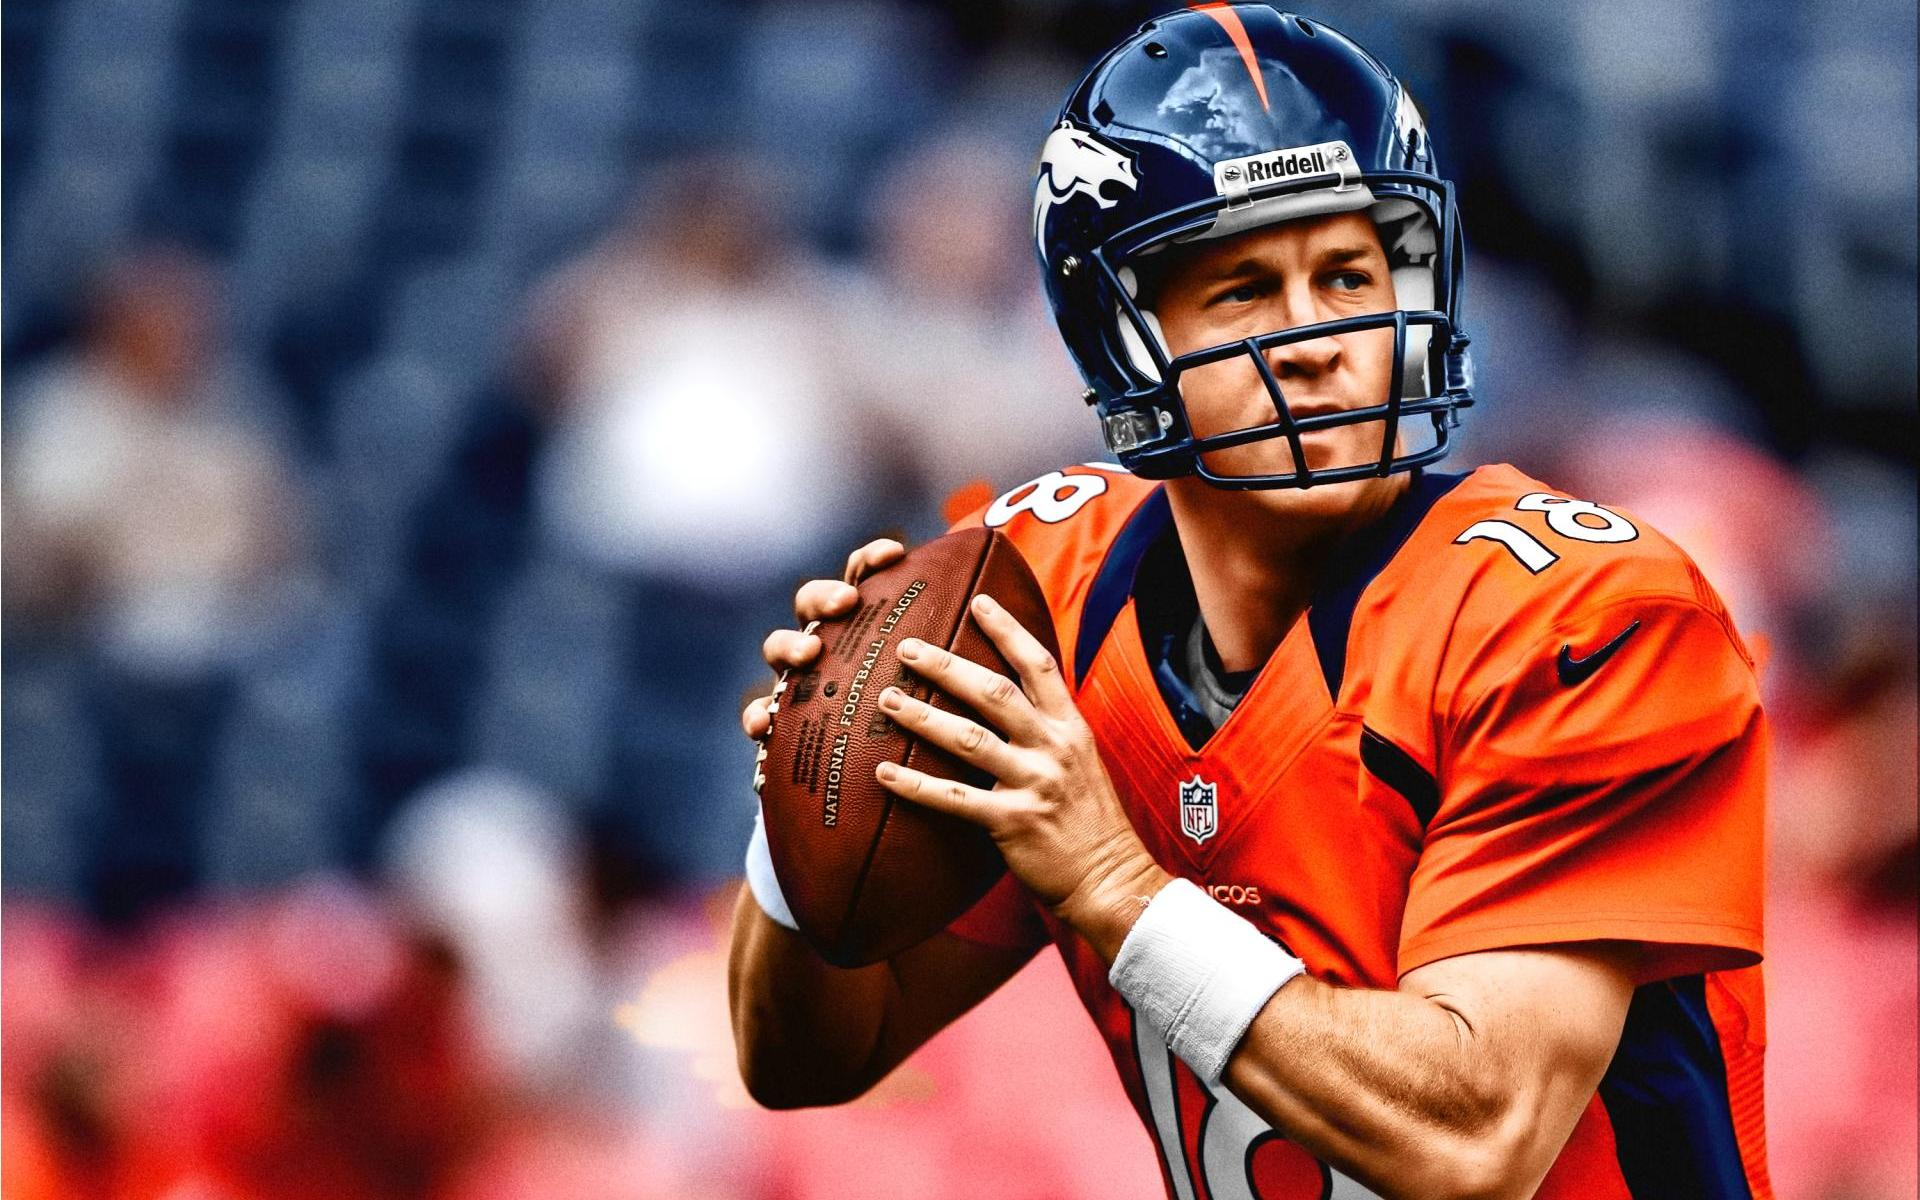 Photo from: http://www.athletize.com/peyton-manning-wallpaper/